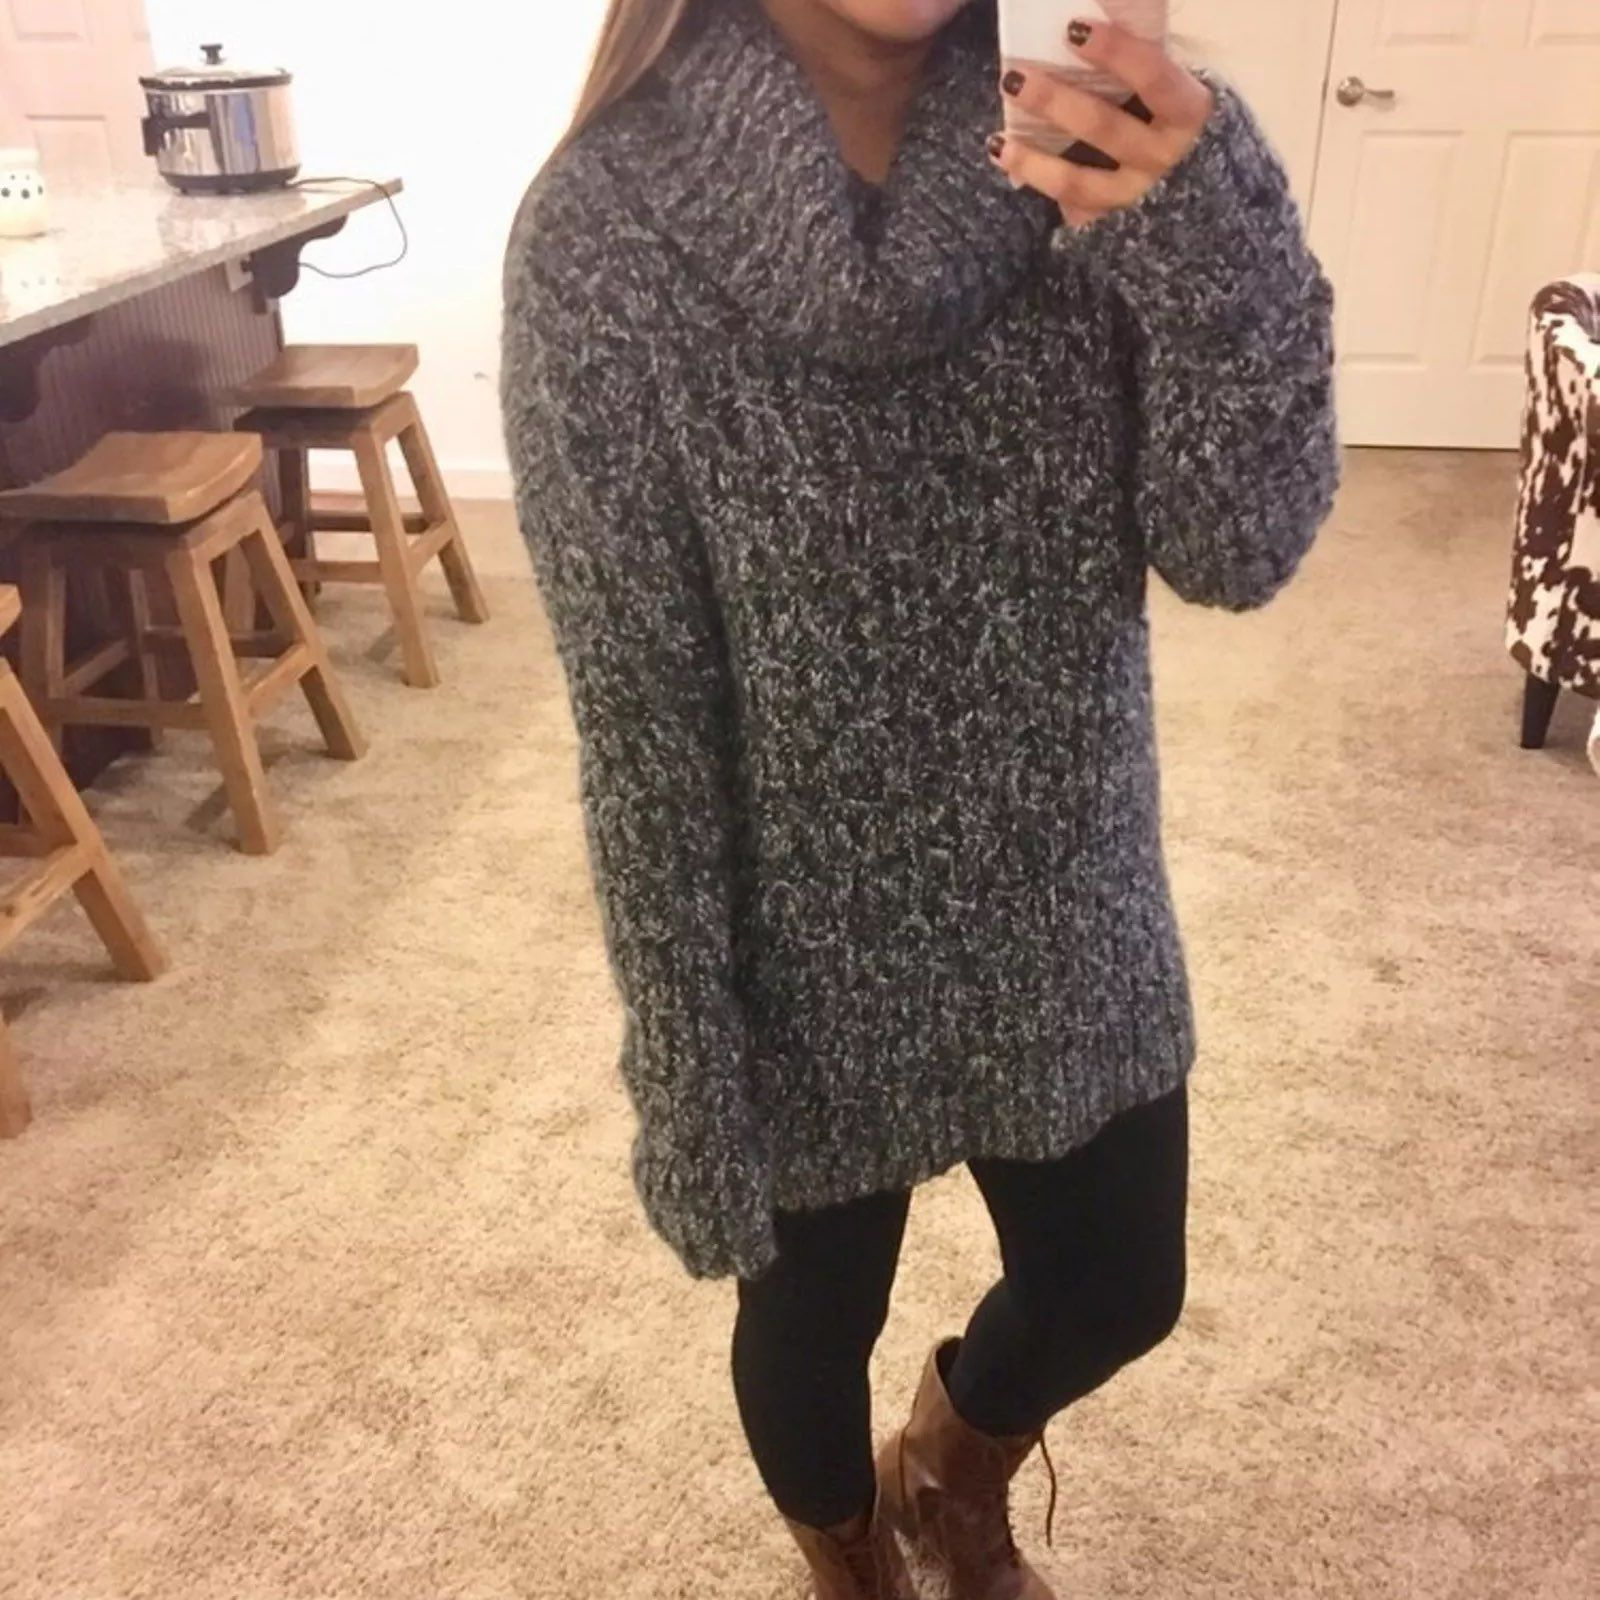 Cozy Cowl Neck Speckled Sweater - Mercari: BUY & SELL THINGS YOU LOVE